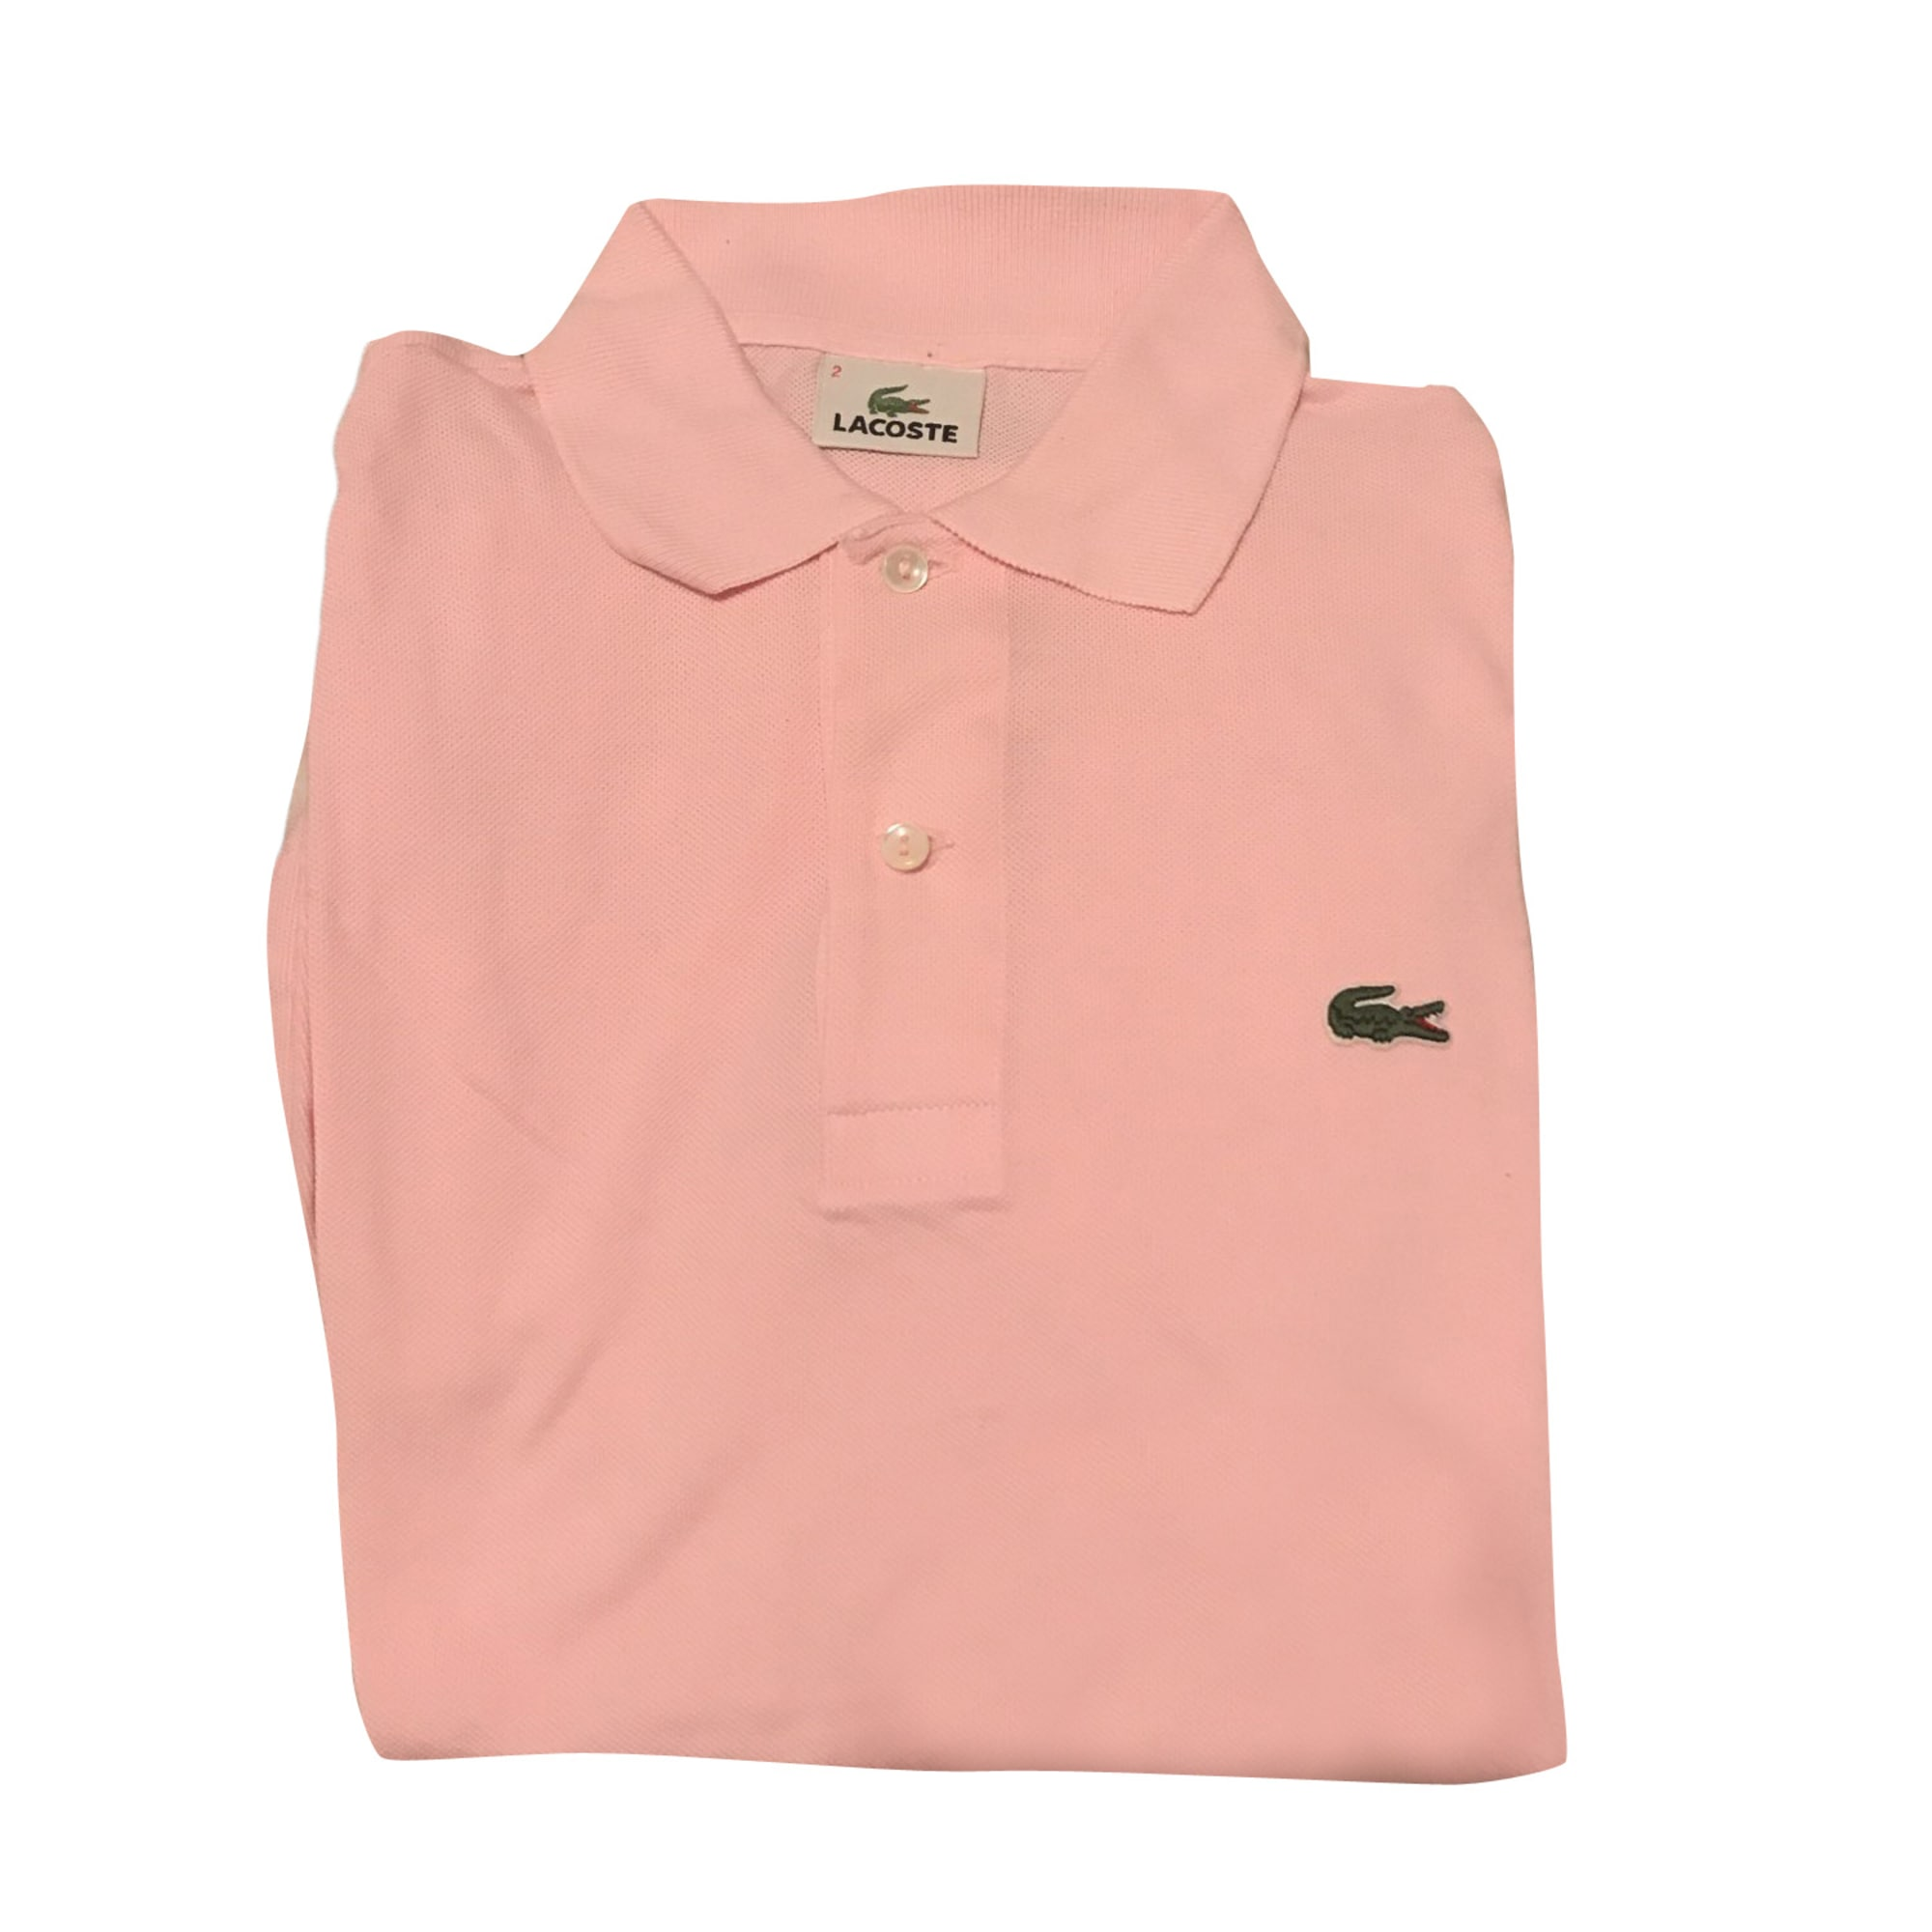 Polo LACOSTE Pink, fuchsia, light pink 406362dfc9